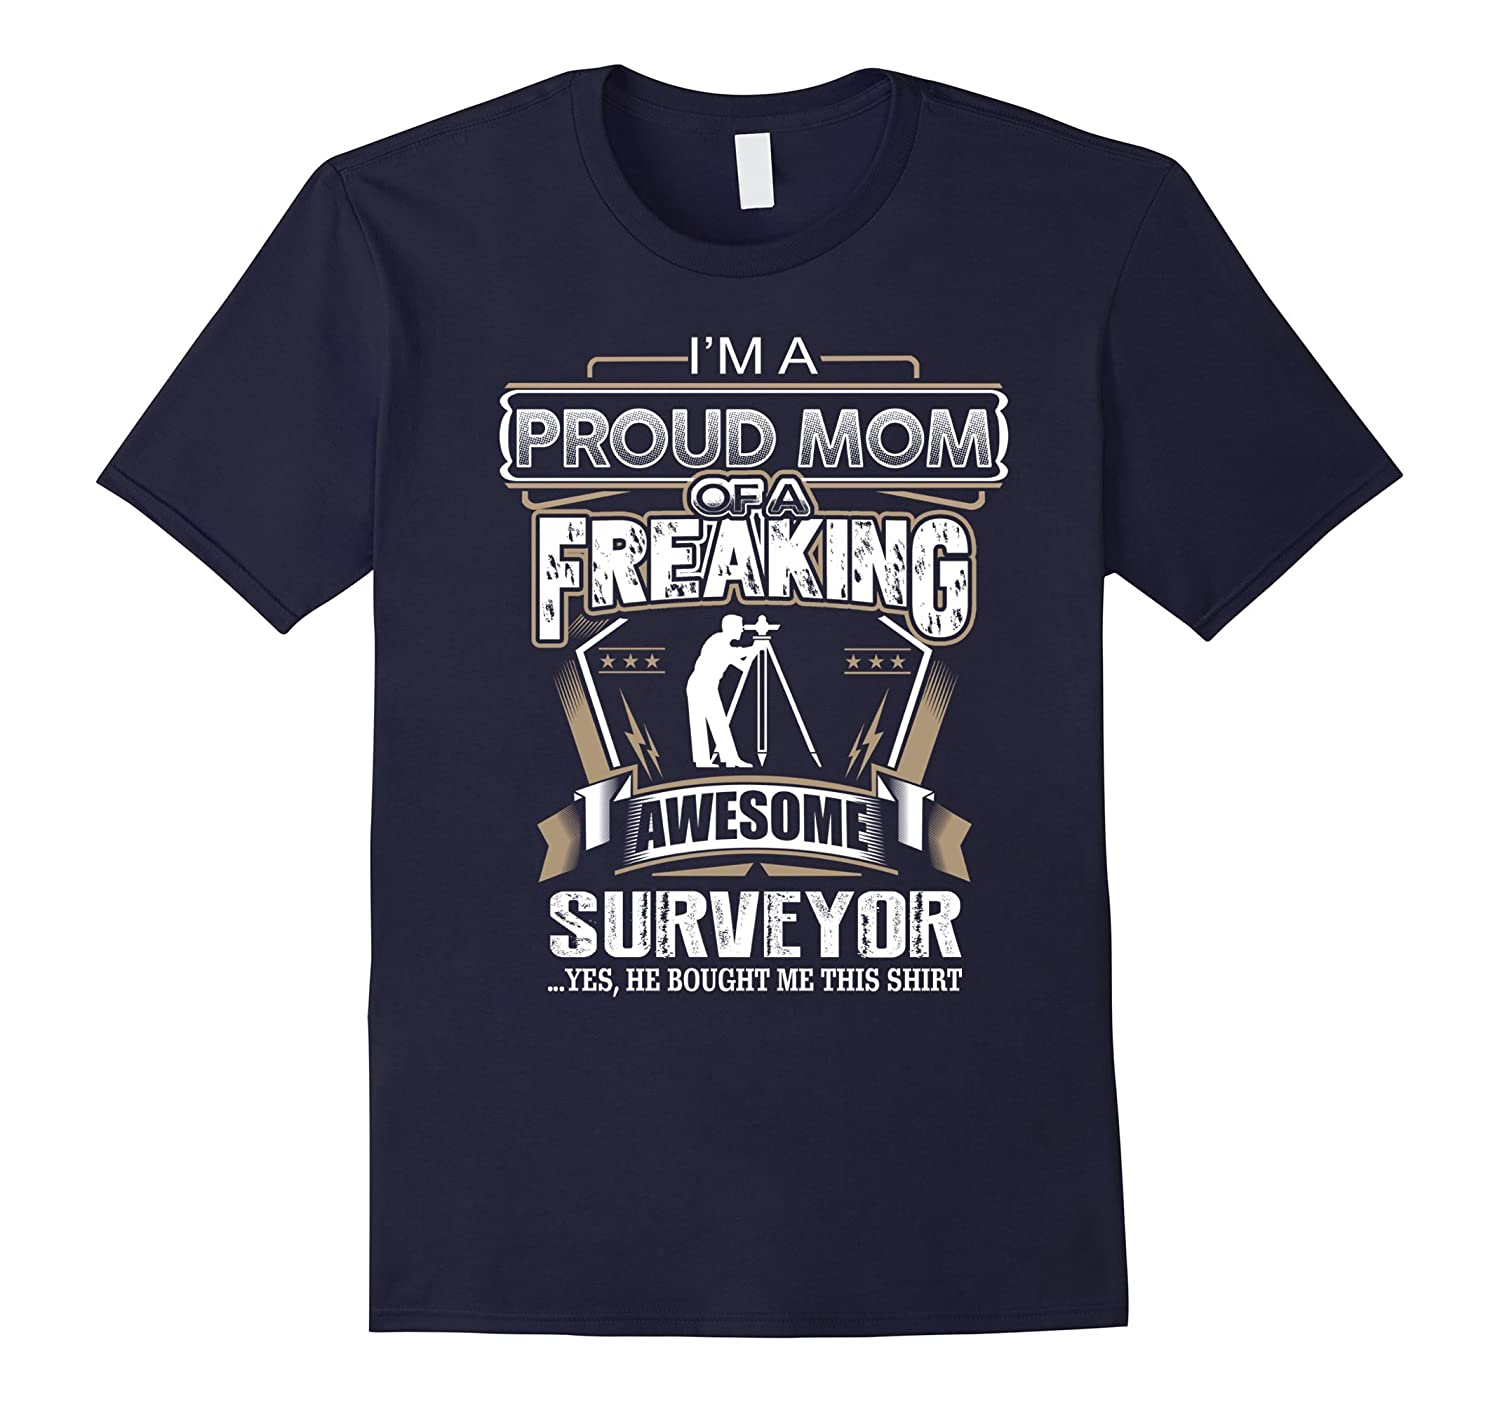 mother day gifts- He bought me this surveyor shirt-TD